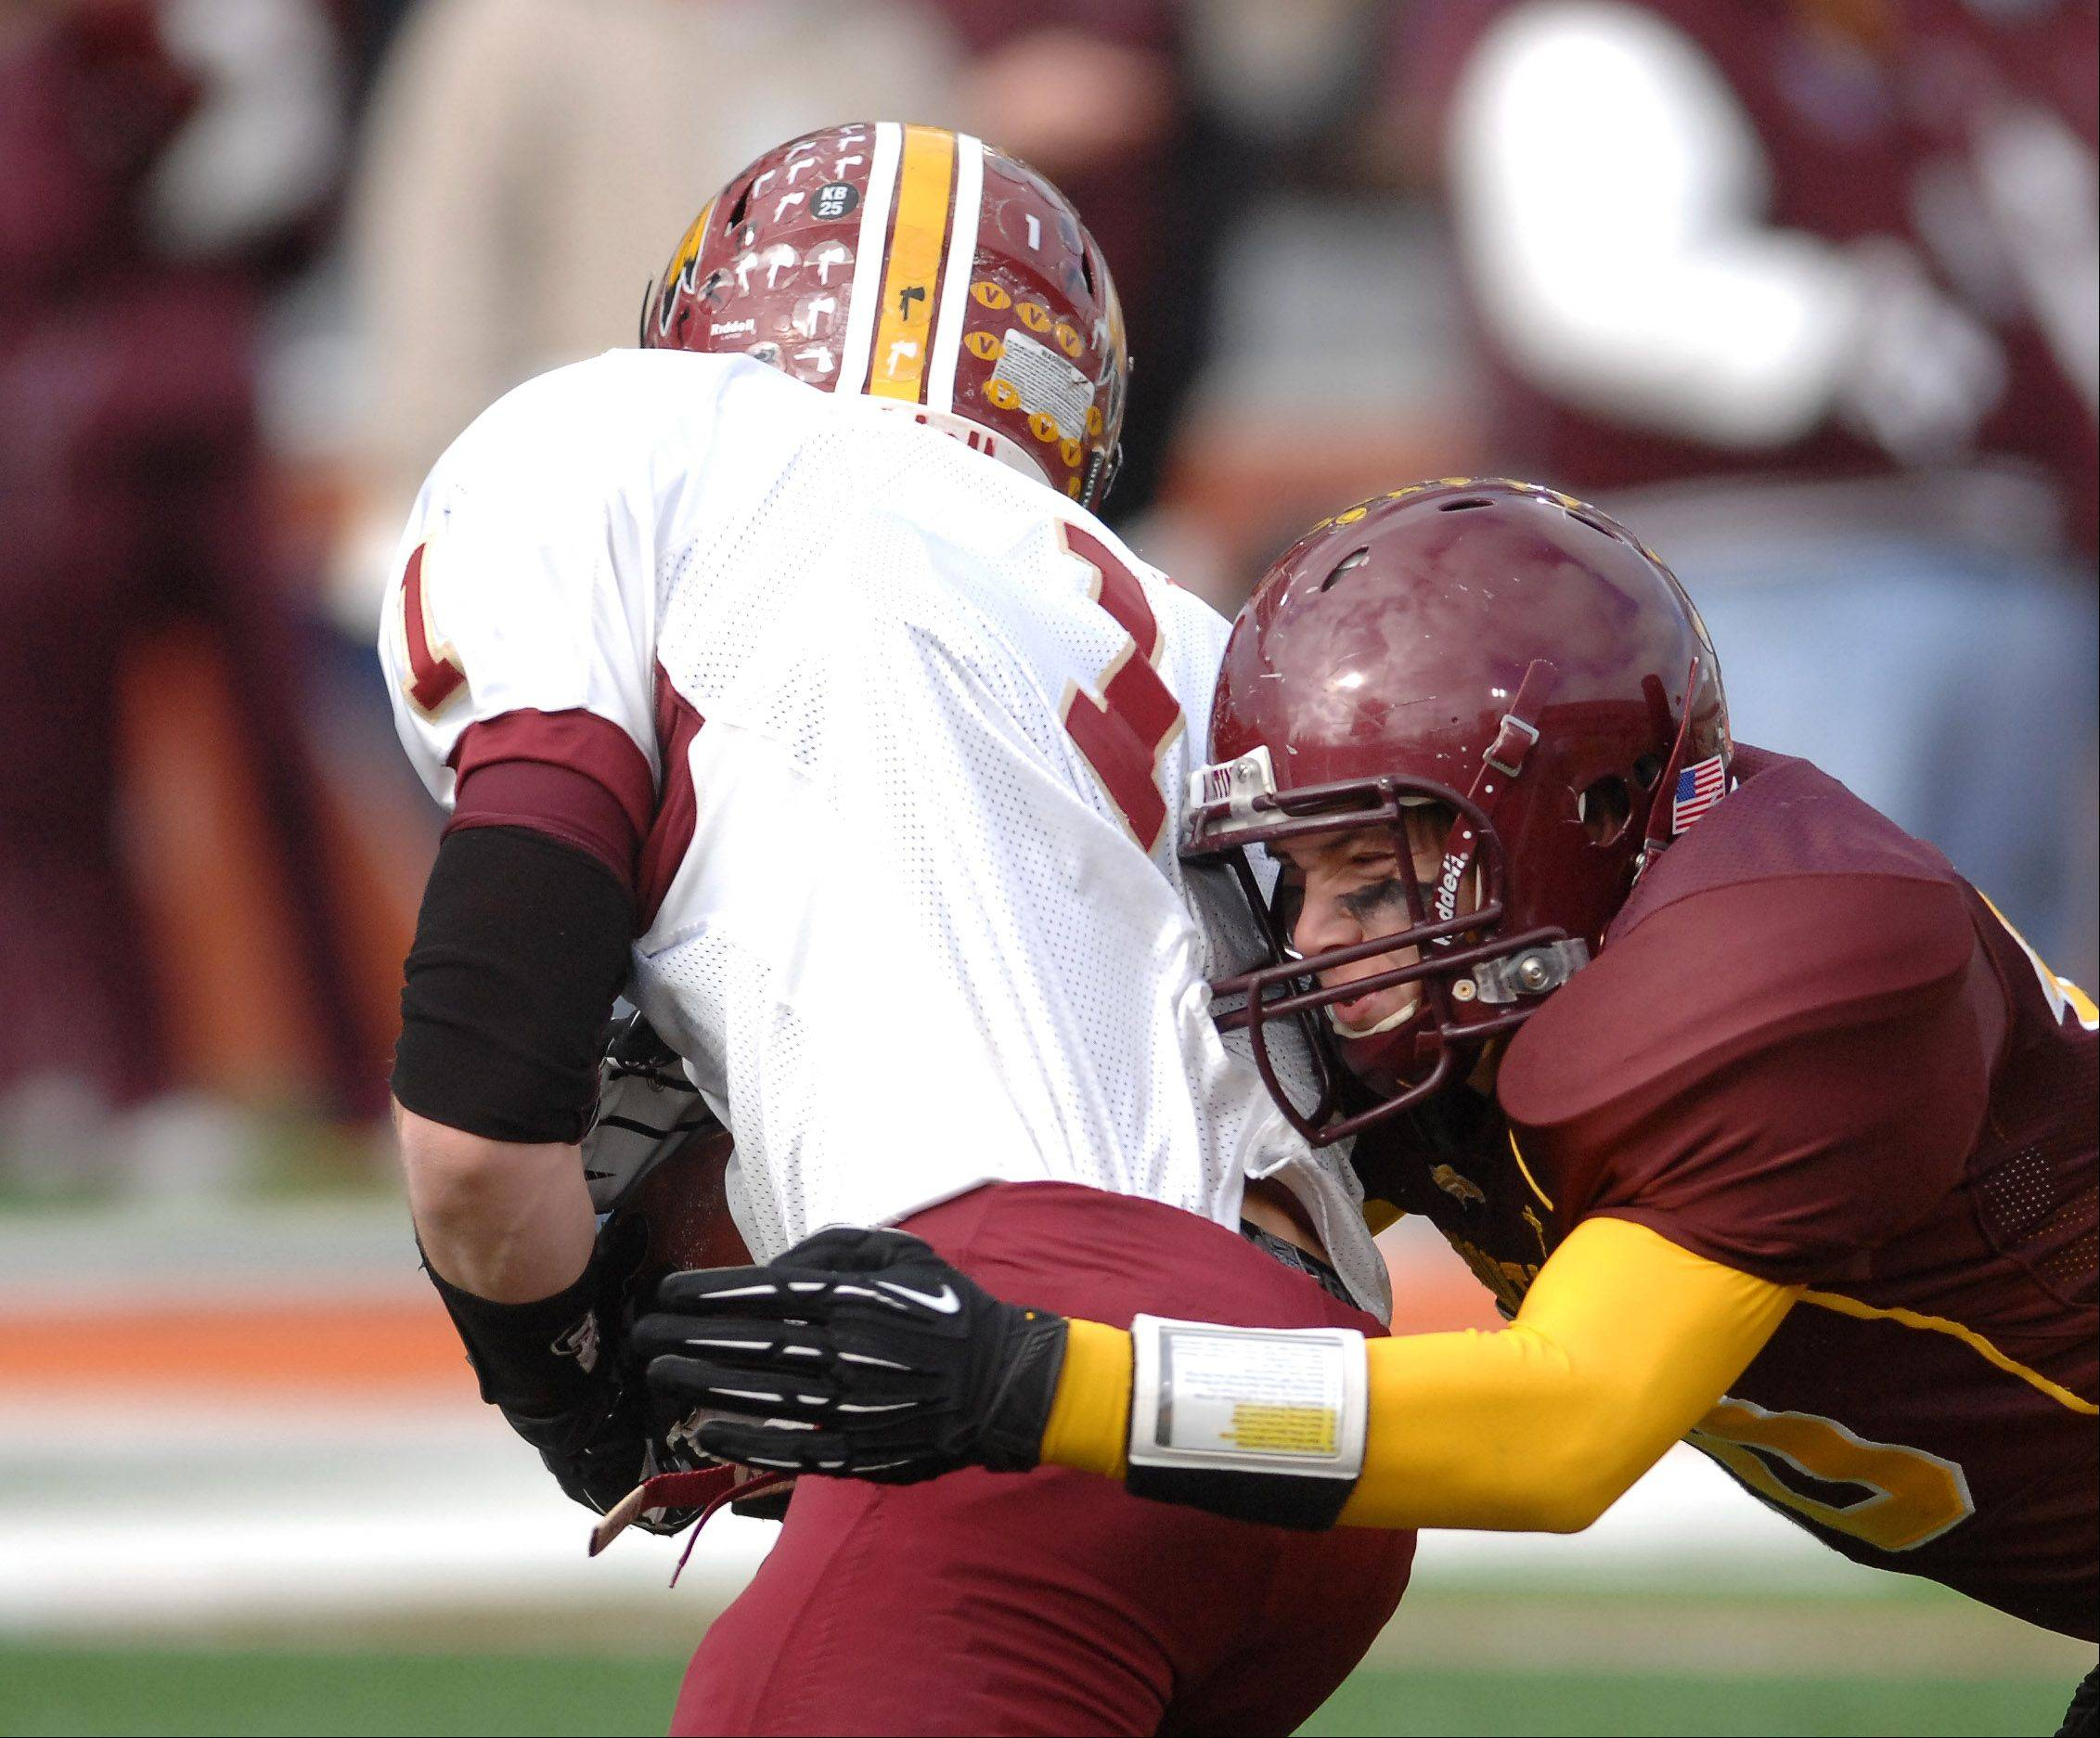 Montini's Tyler Quick (10) brings down Jake Hogan of Morris for a loss during Saturday's Class 5A state title game at Memorial Stadium in Champaign.